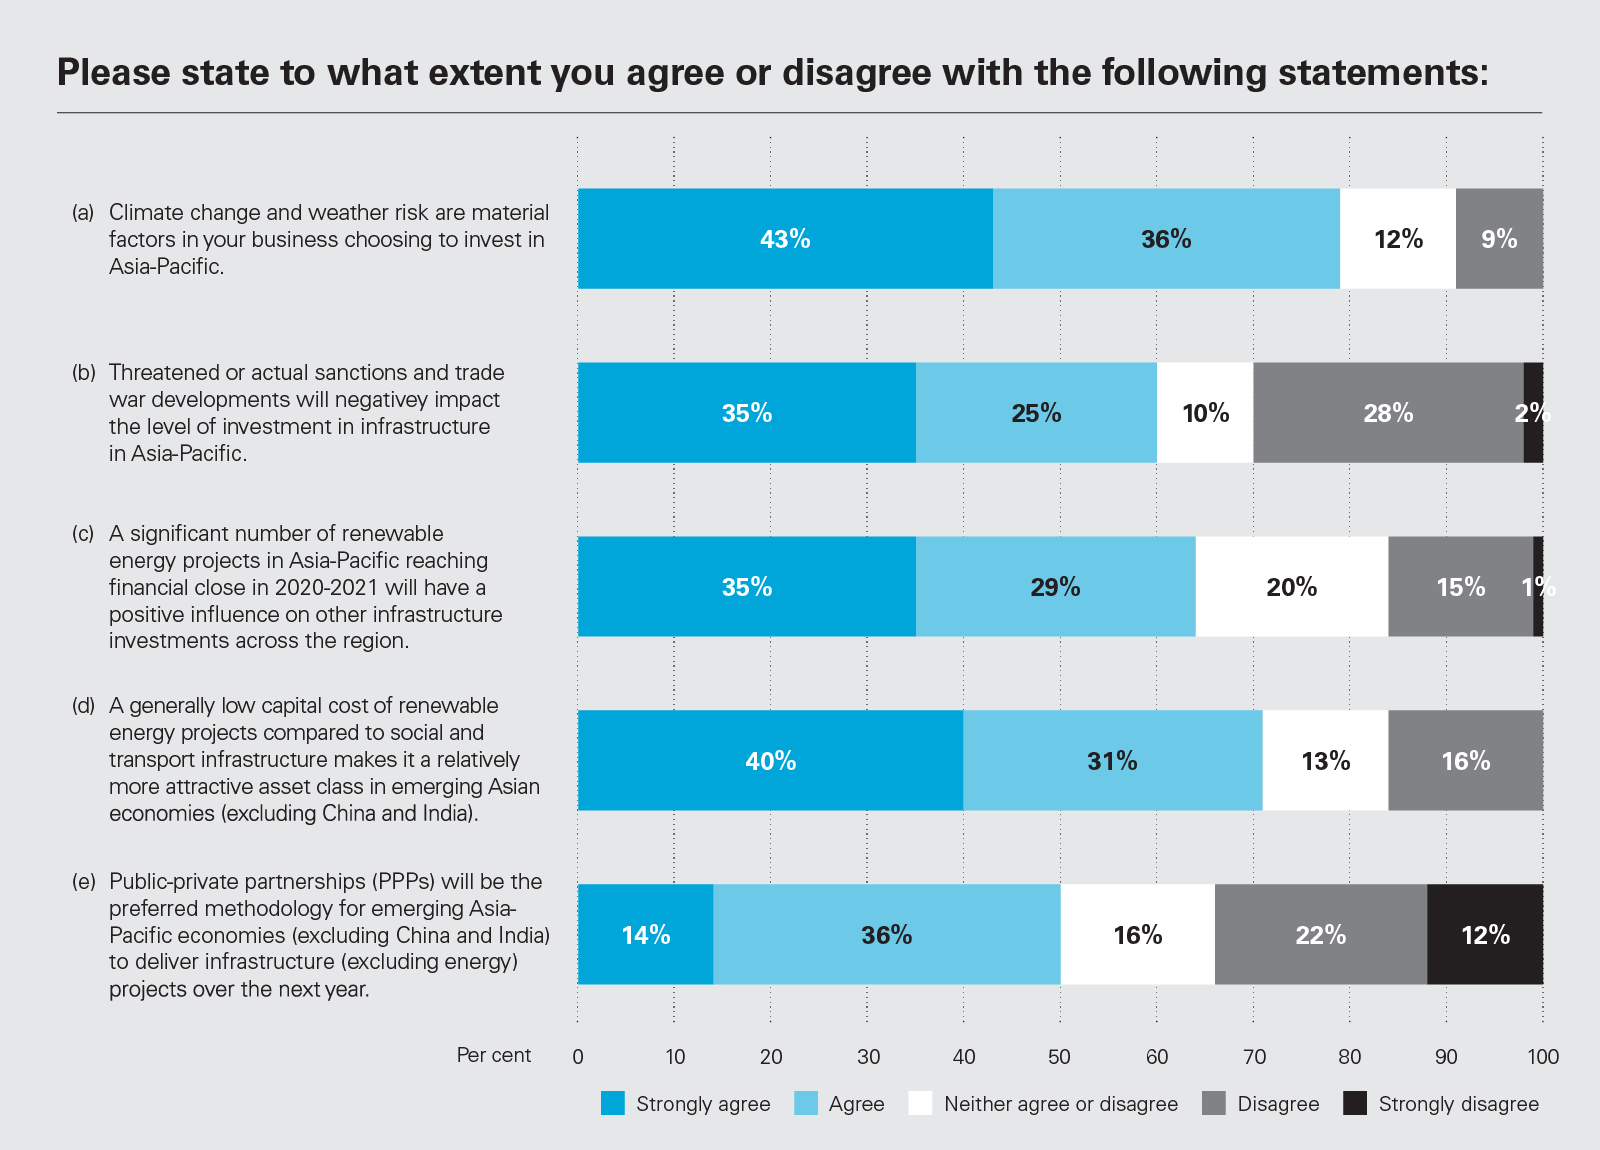 Please state to what extent you agree or disagree with the following statements (chart)